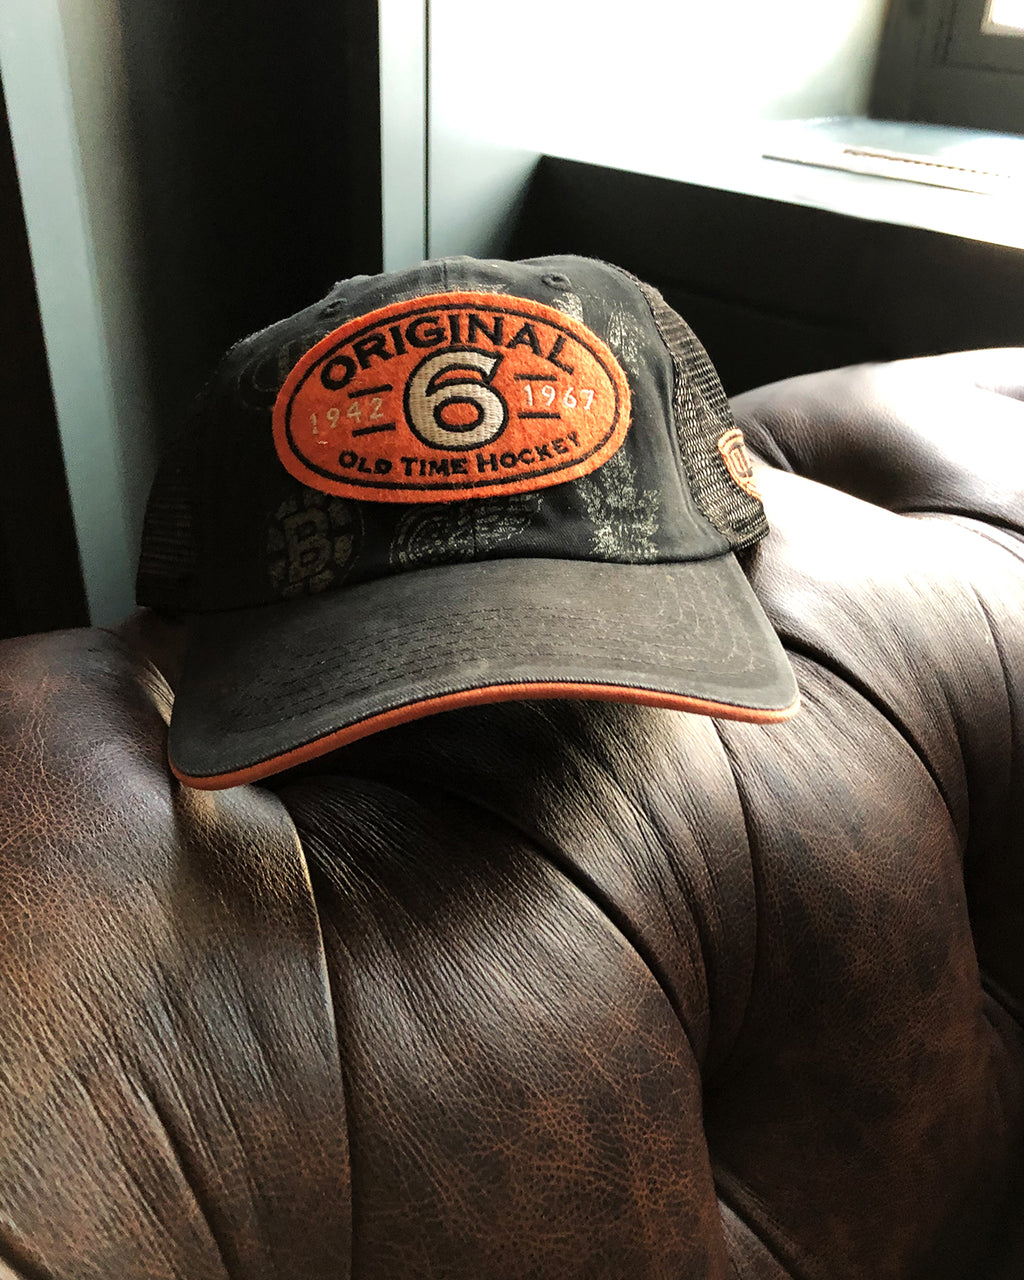 Old Time Hockey Original Six Cartago Cap